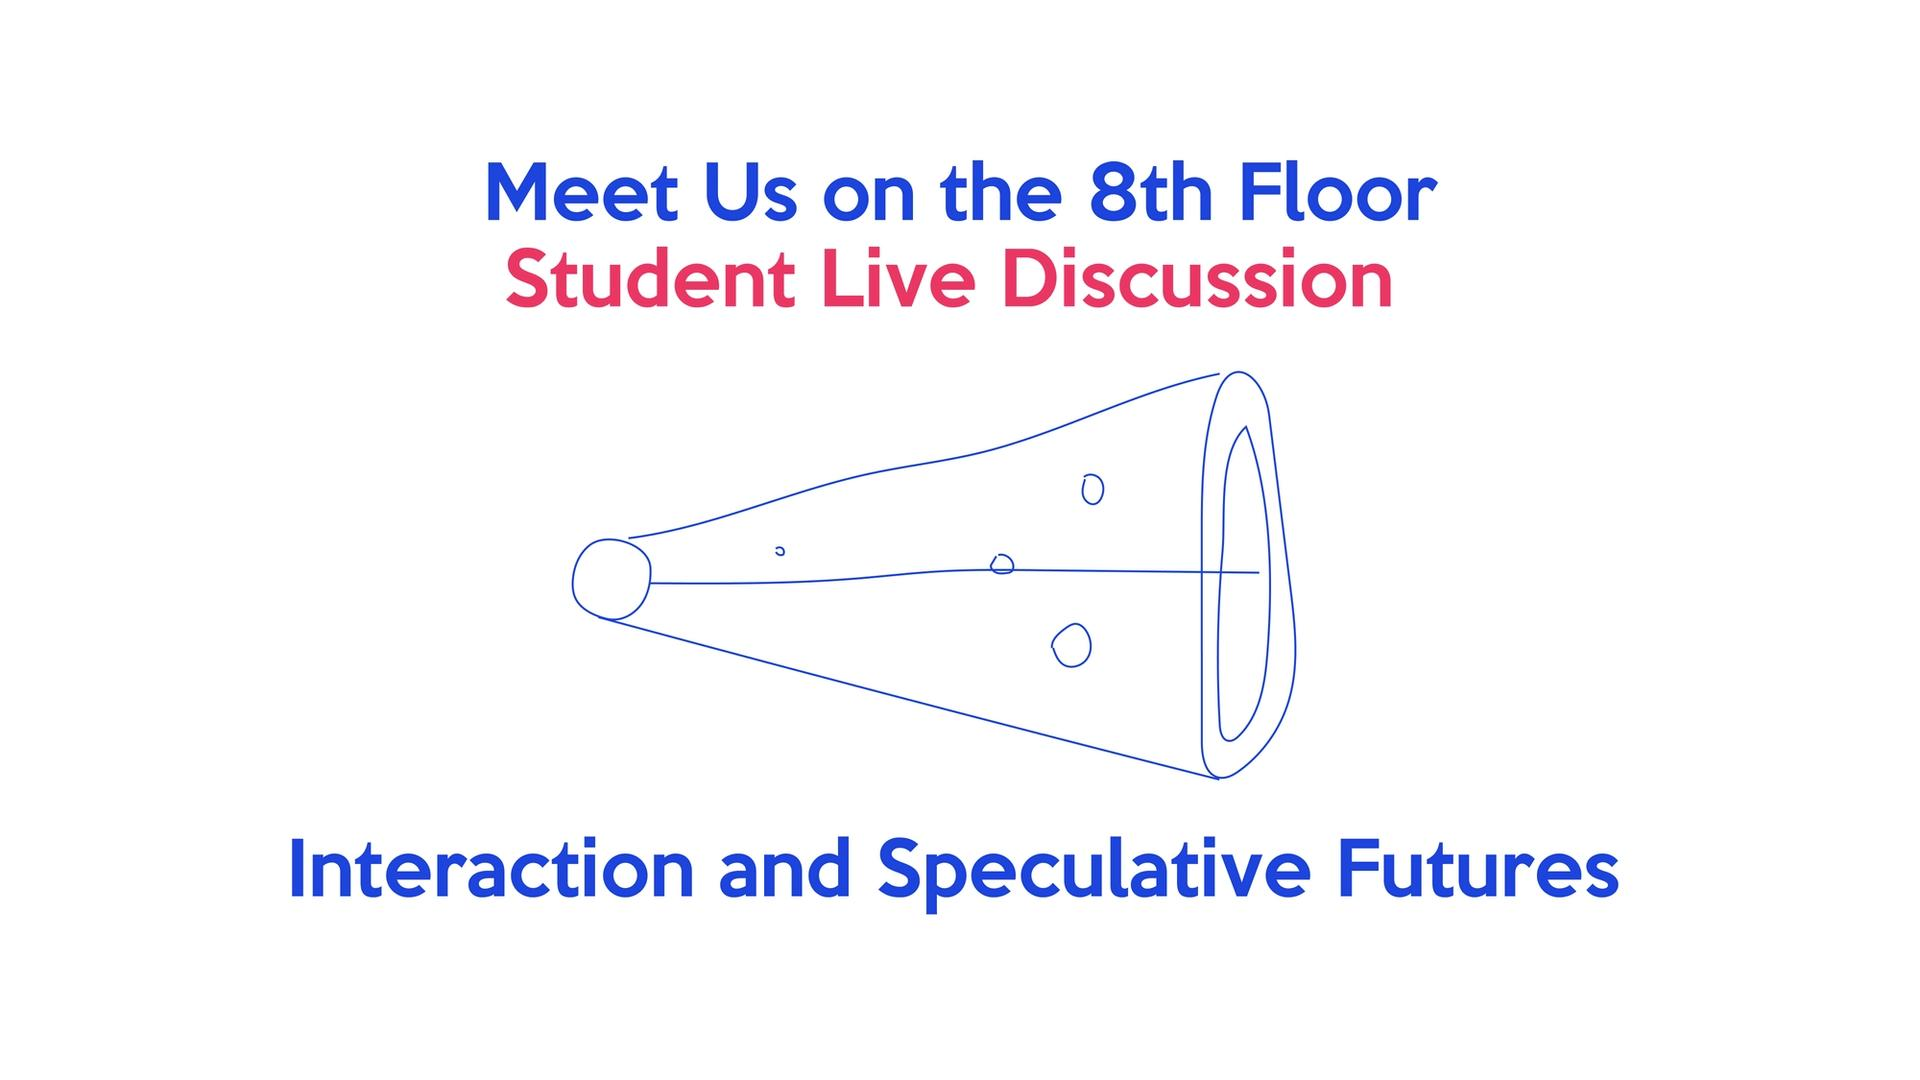 Meet Us on the 8th Floor: Student Live Discussion